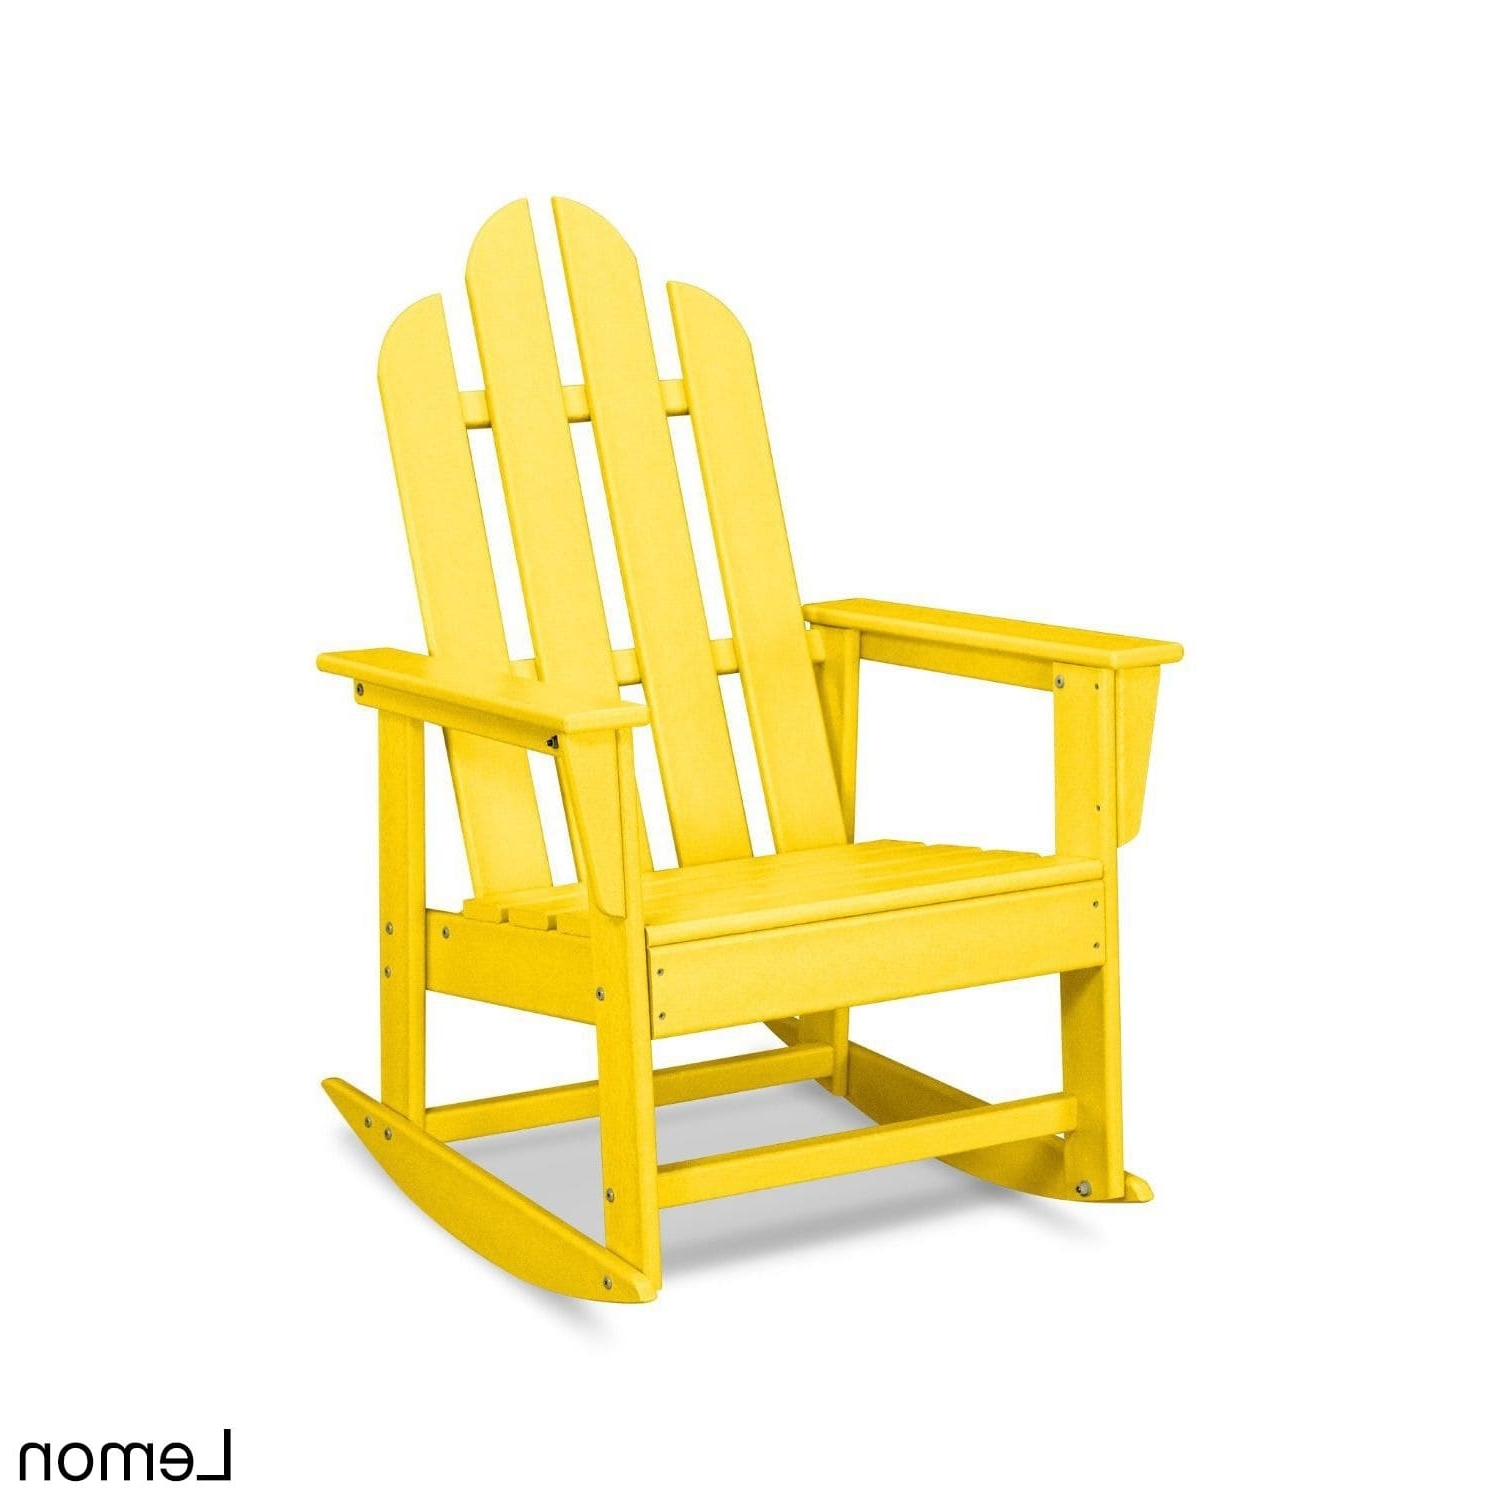 Yellow Outdoor Rocking Chairs Intended For Most Current Shop Polywood Long Island Outdoor Rocking Chair – Free Shipping (View 13 of 15)